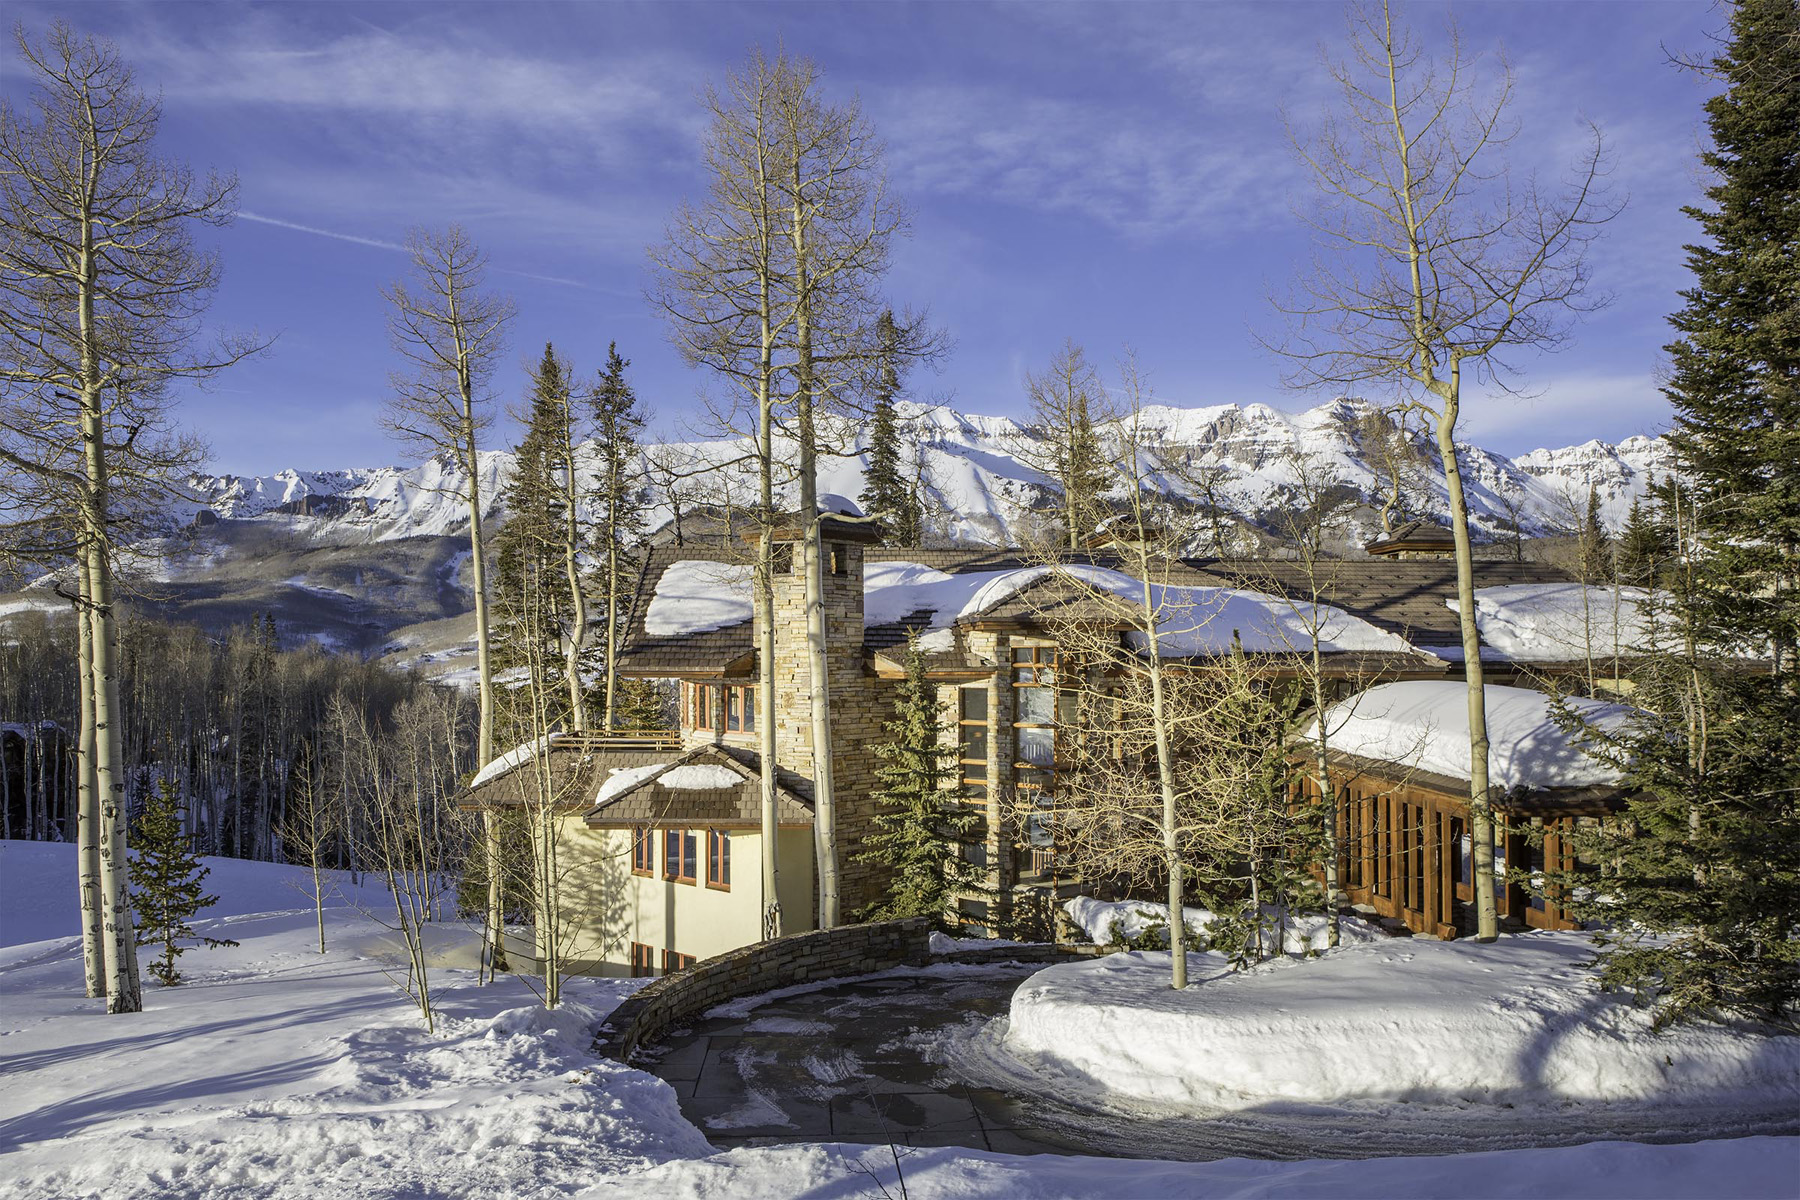 Single Family Home for Sale at Halcyon West Telluride, Colorado, 81435 United States